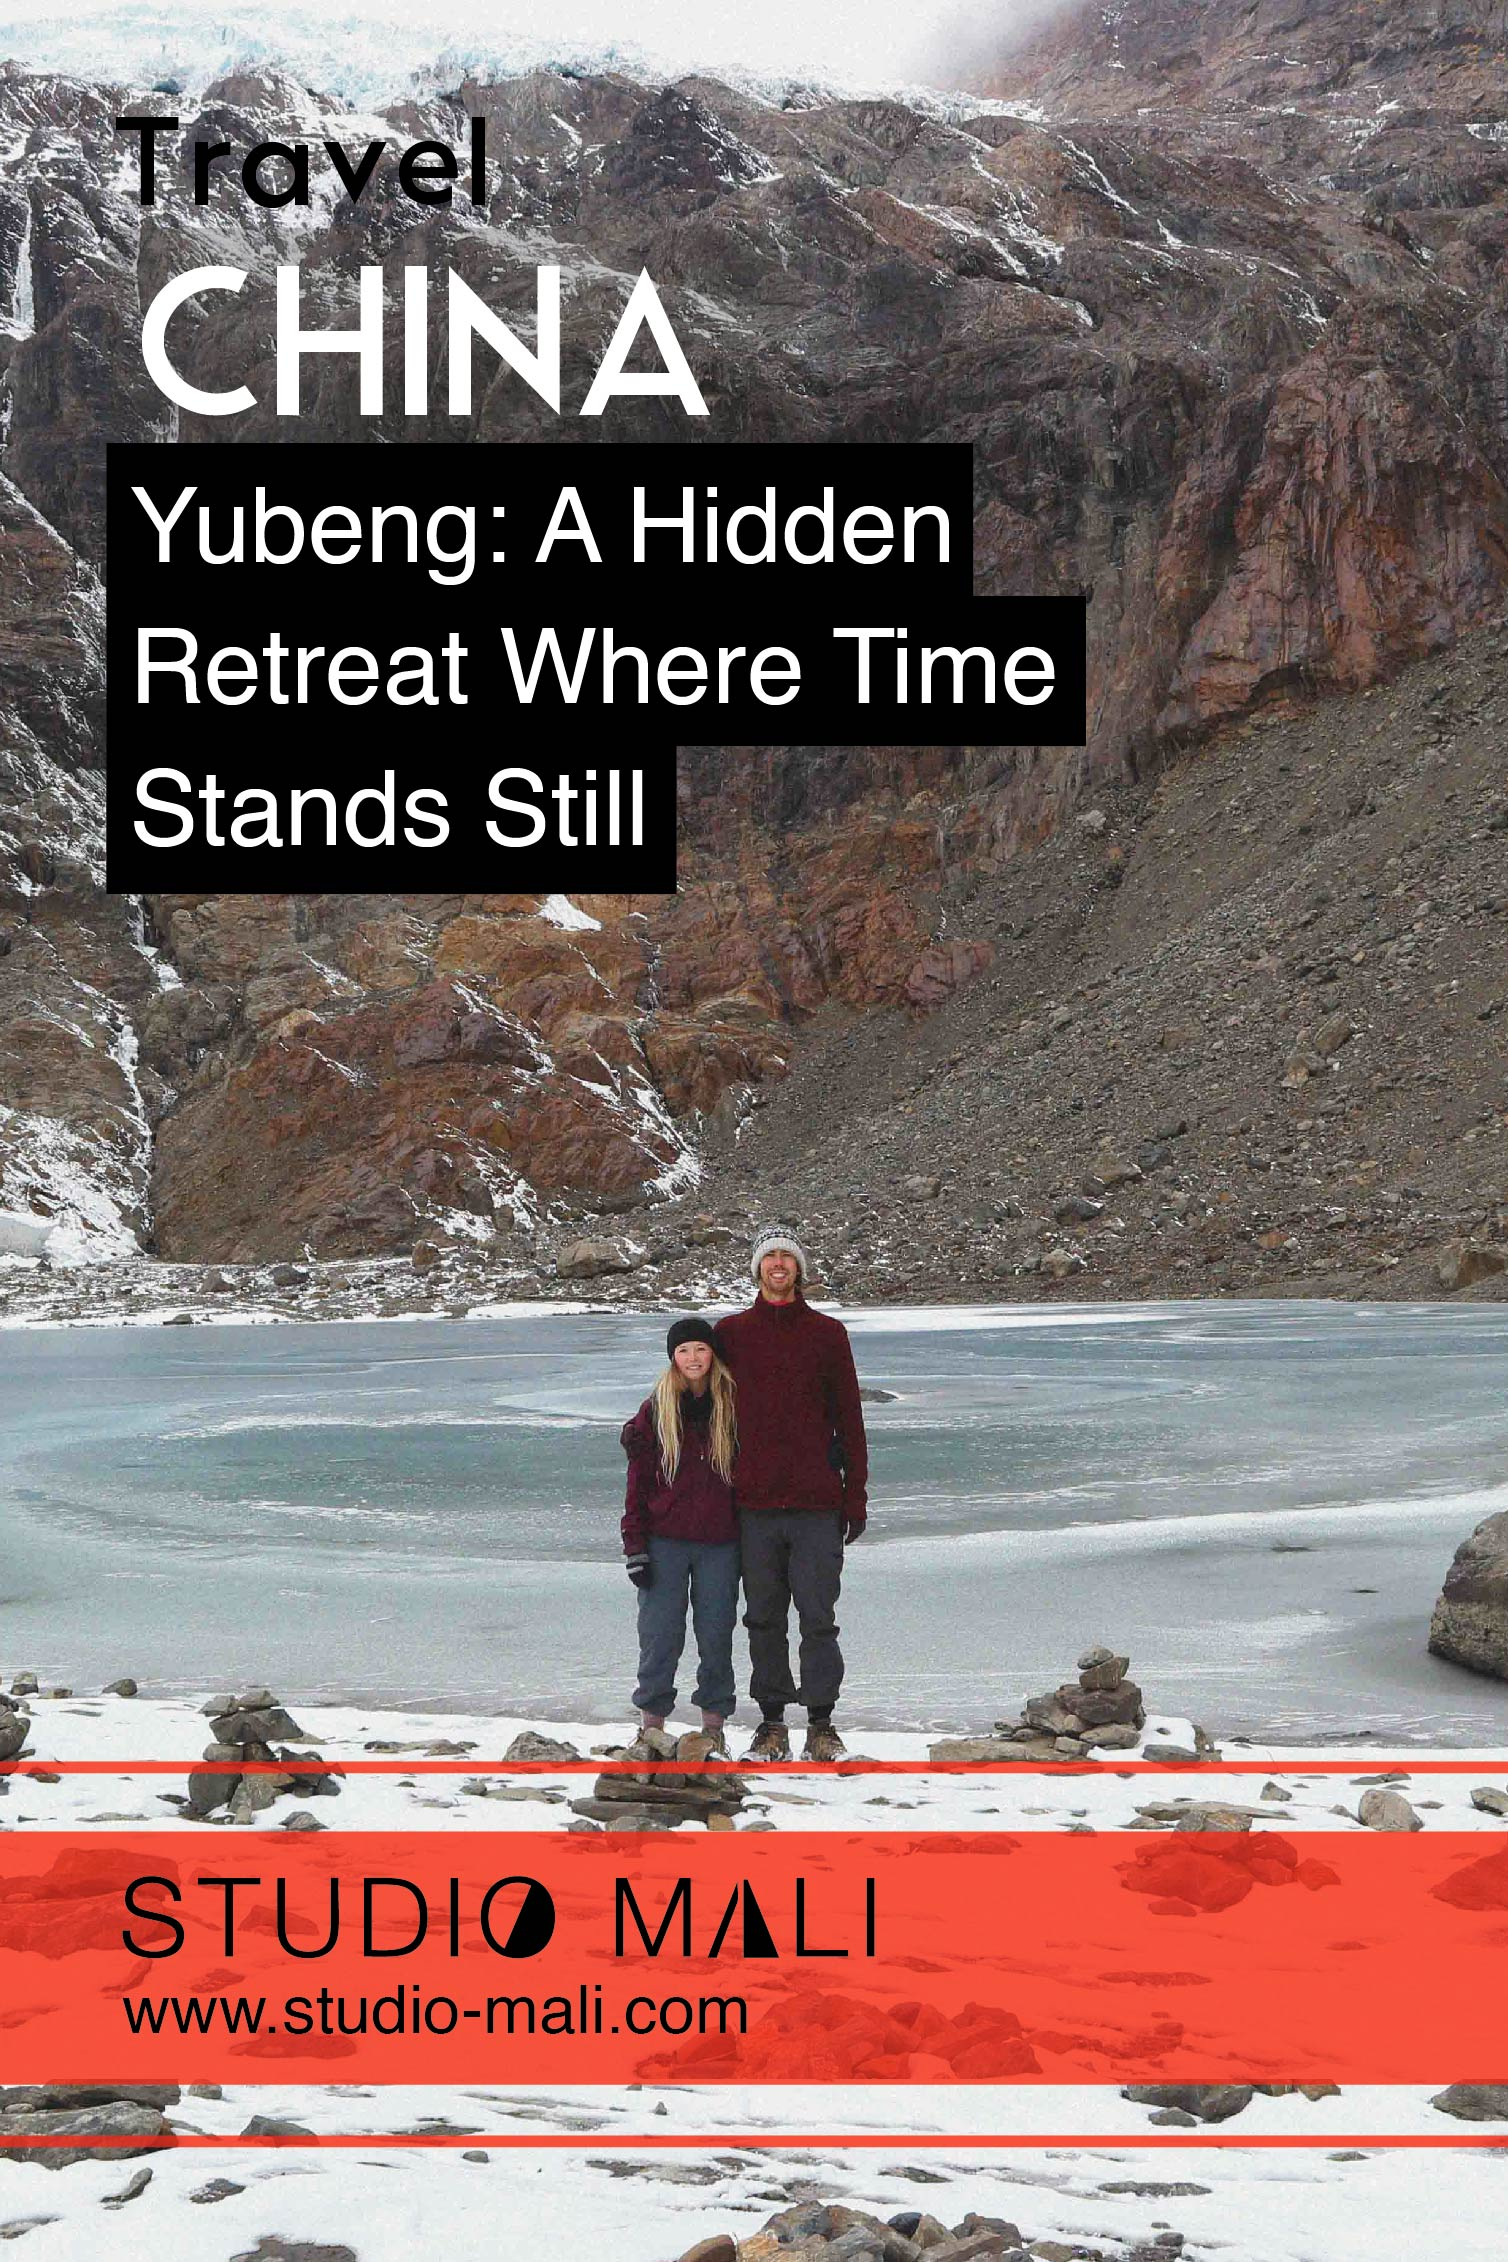 China - Yubeng - A Hidden Retreat Where Time Stands Still, by Studio Mali